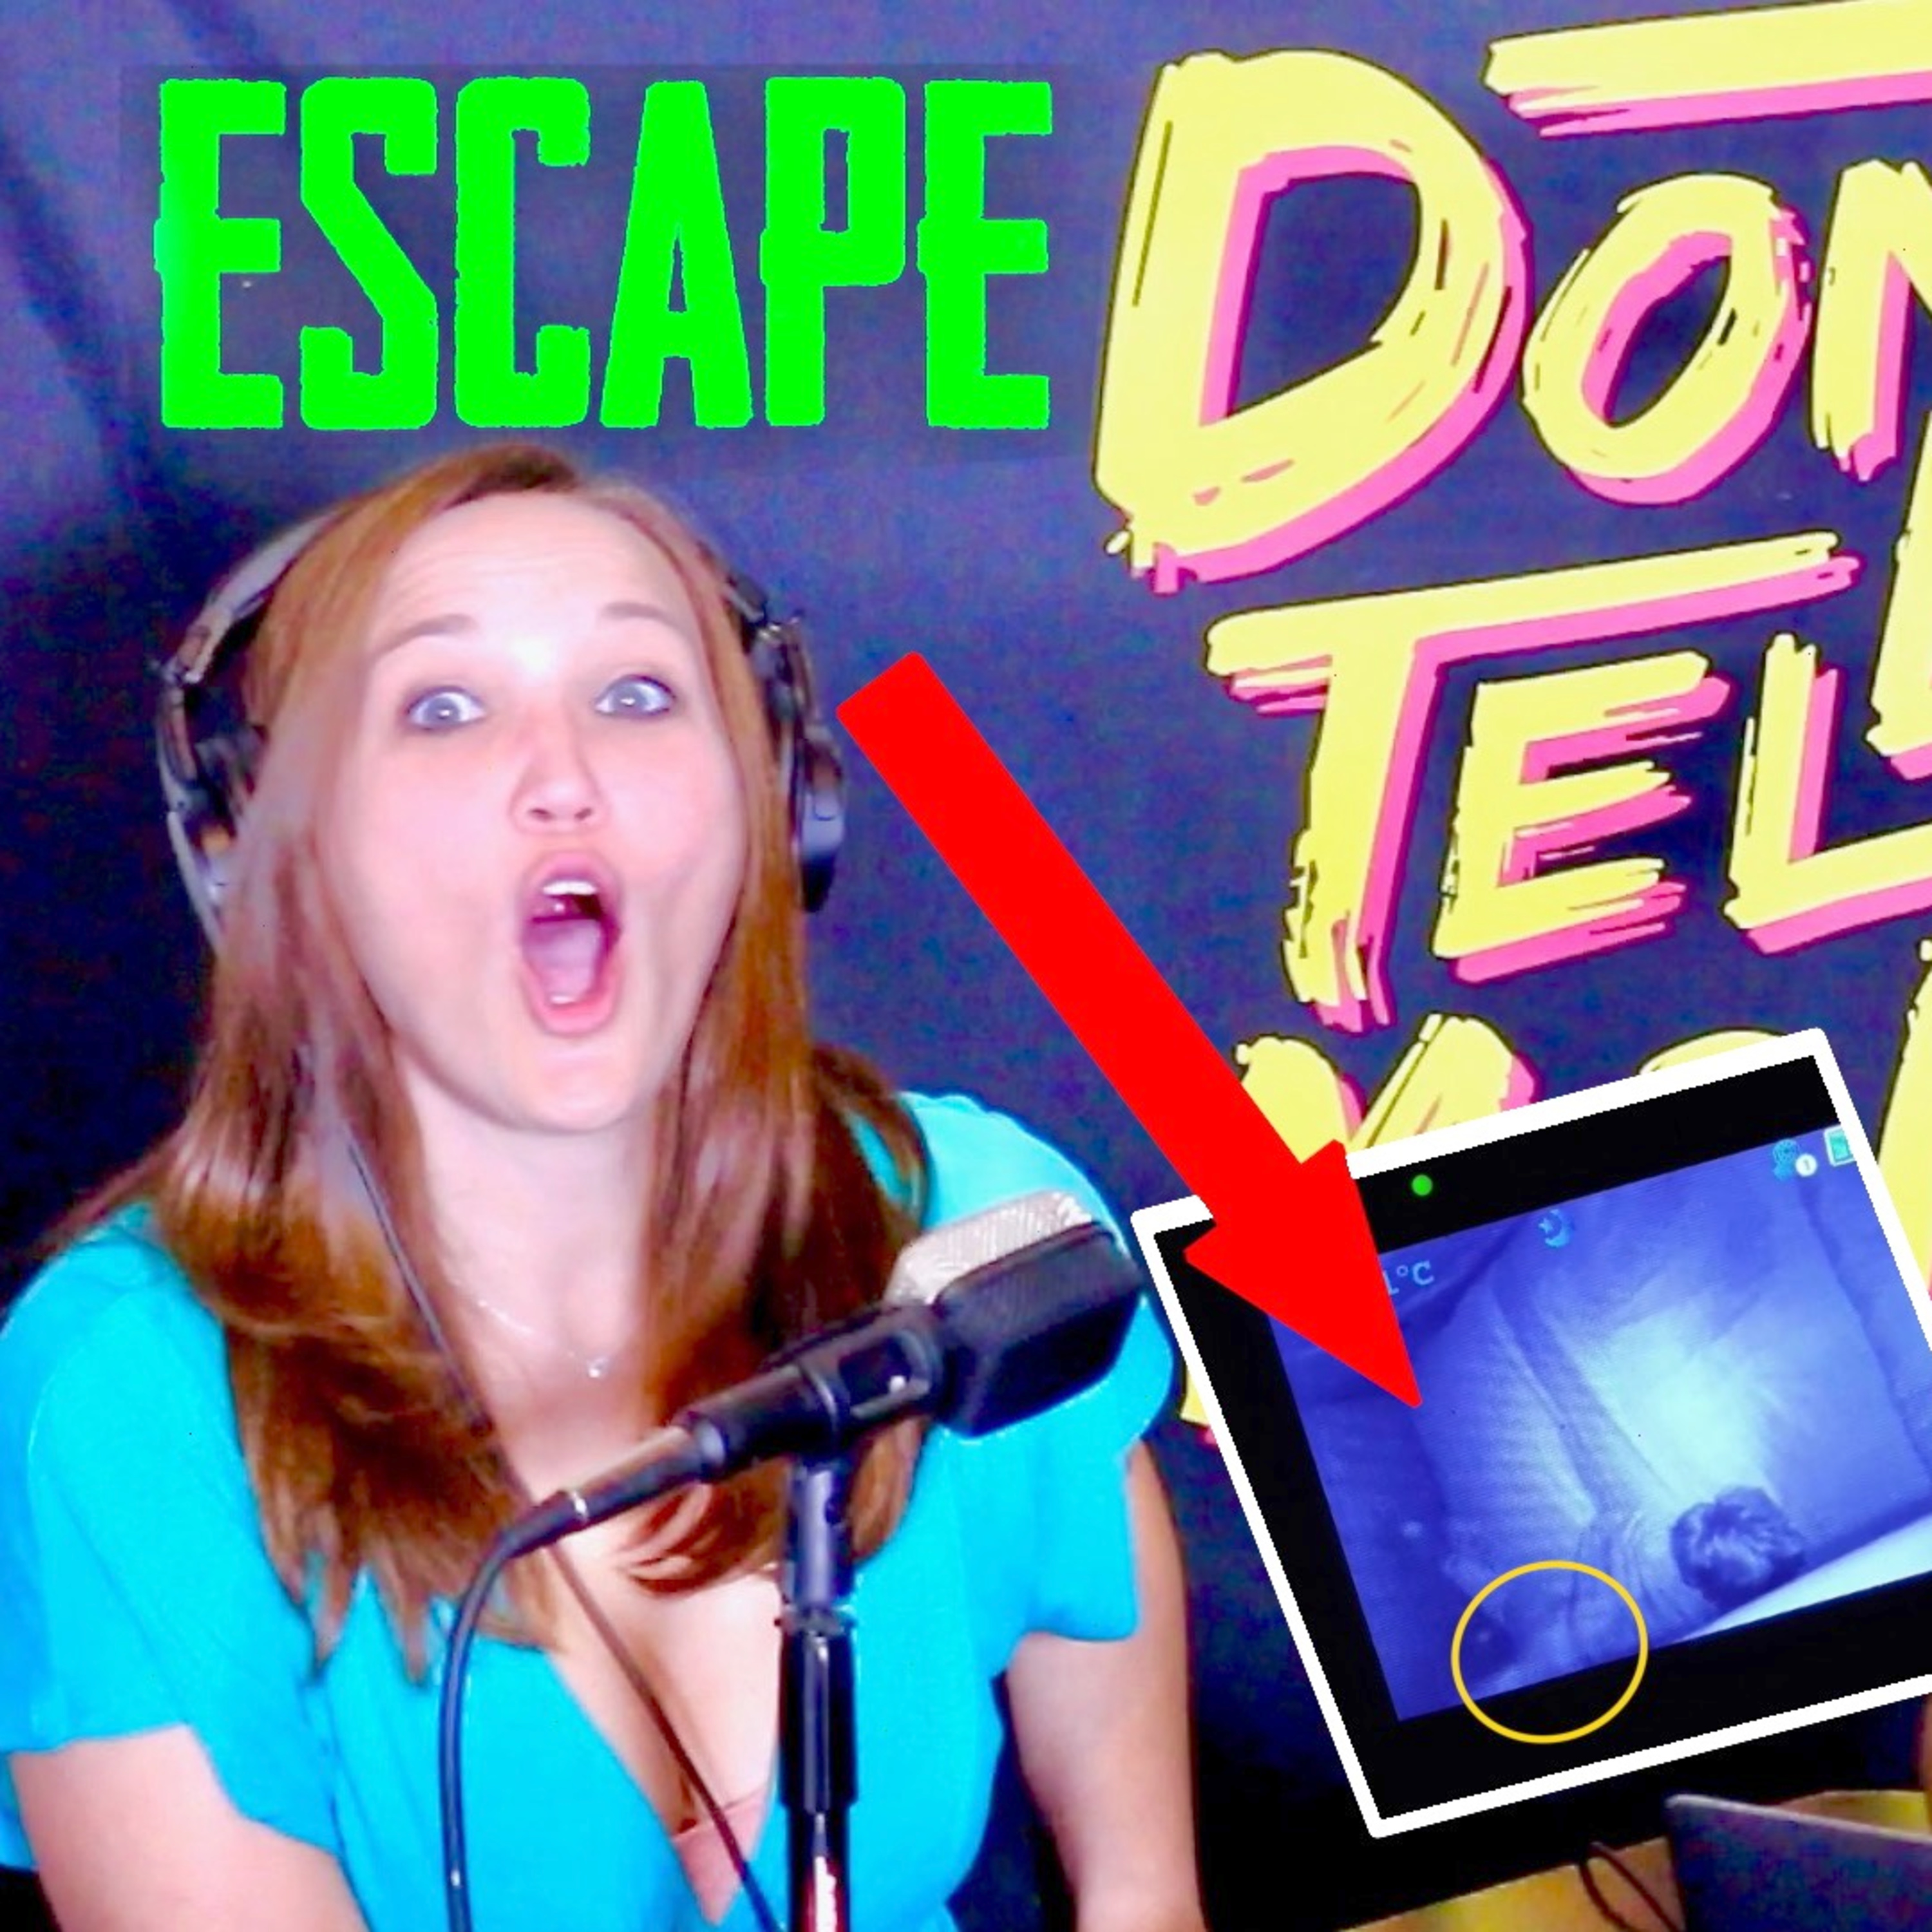 ESCAPING THE CRIB - How to Stop it! Don't Tell Mom: e.114